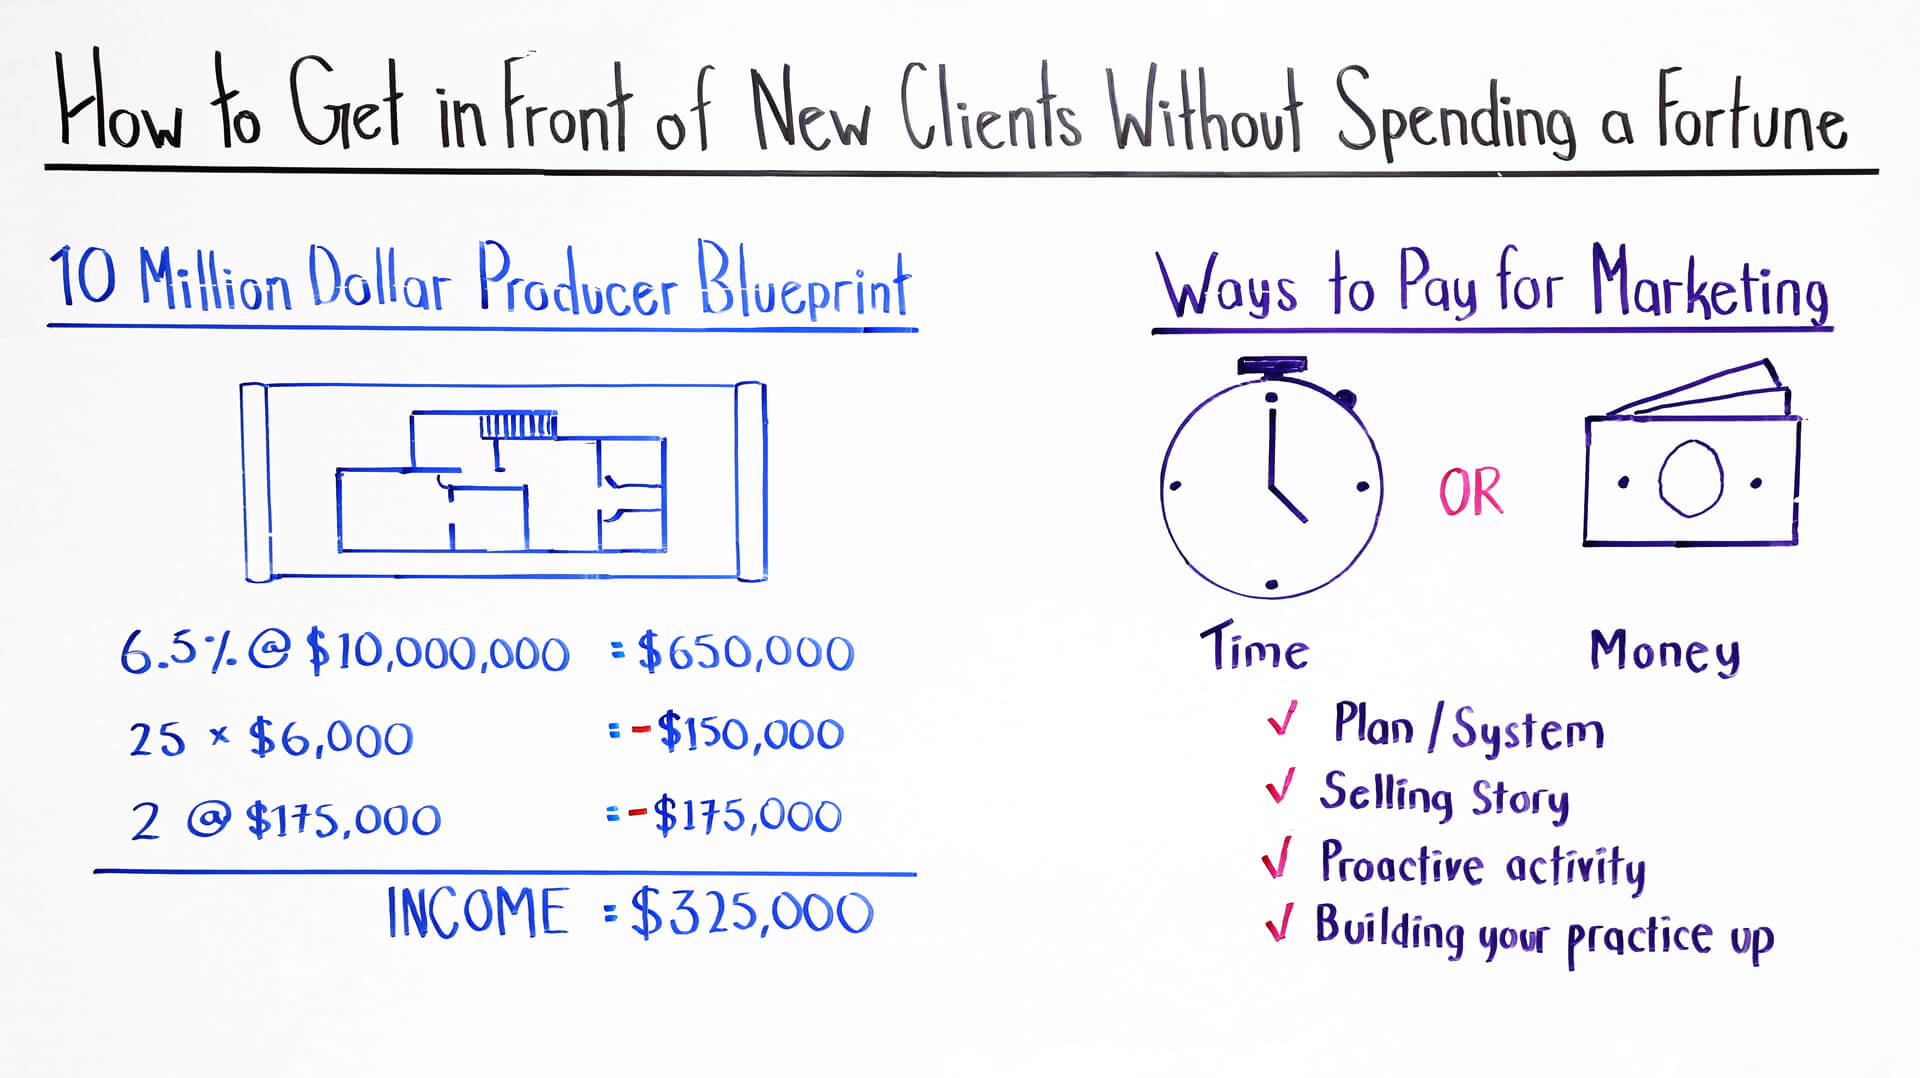 how to get in front of new clients without spending a fortune